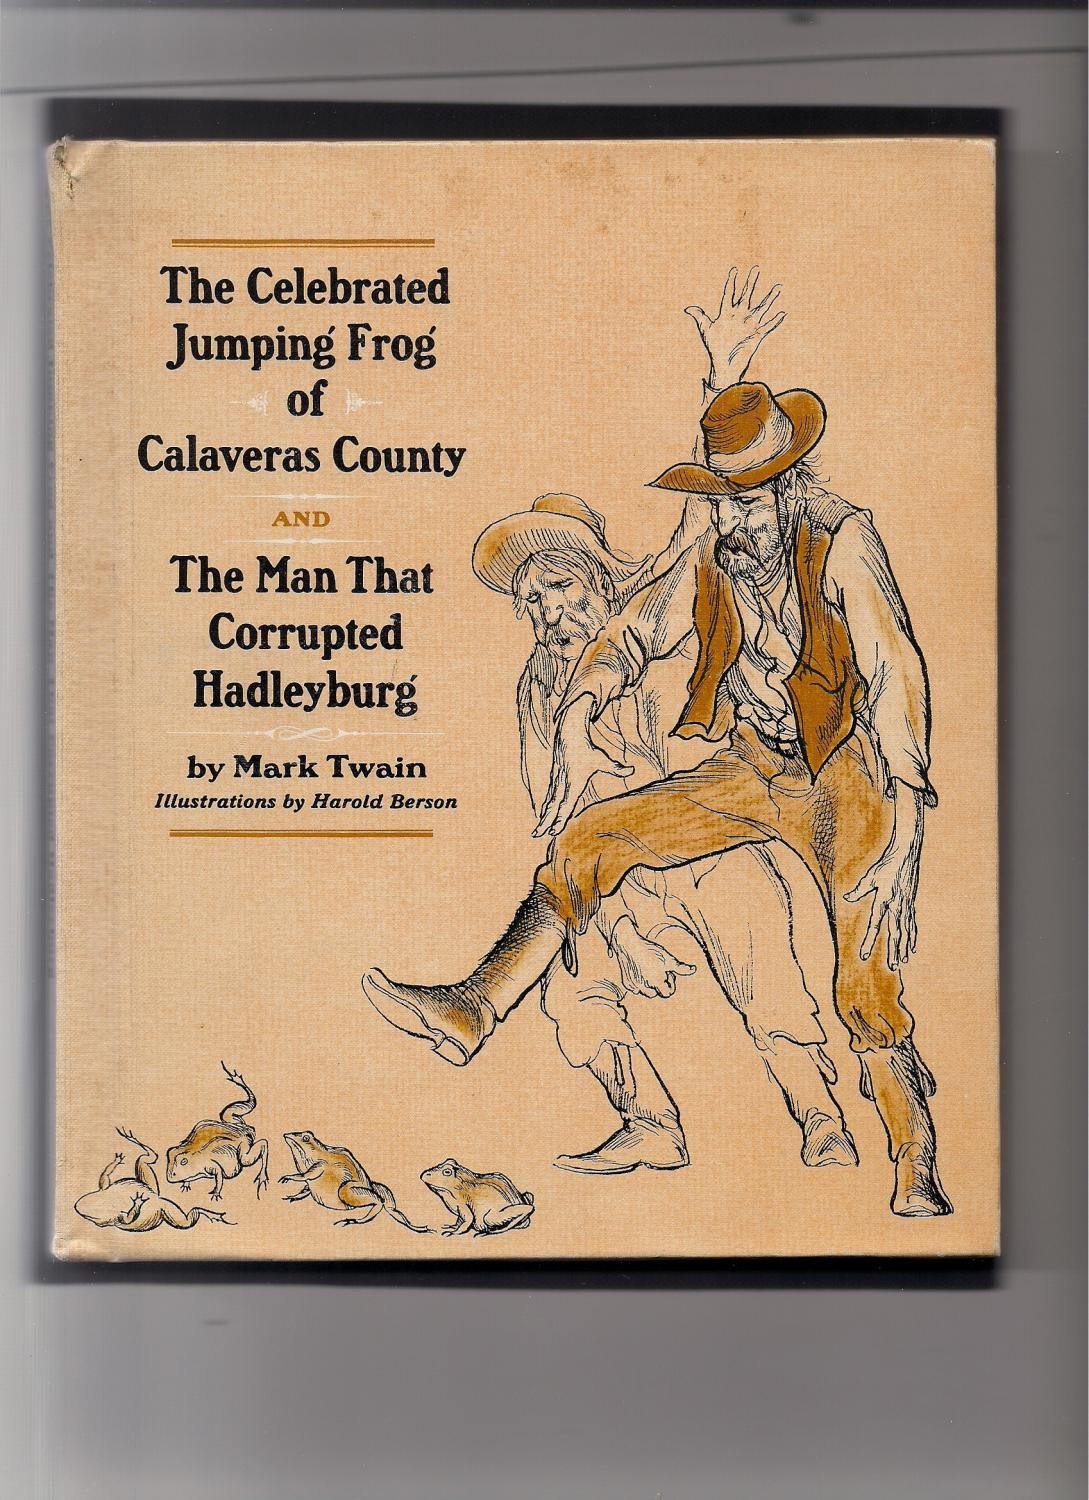 the celebrated jumping frog of calaveras county short story my mark twain glencoe am literature essa The celebrated jumping frog of calaveras county by mark twain, 1865 the magic trick: constructing a conceptual joke about storytelling happy leap year 2016 seems.